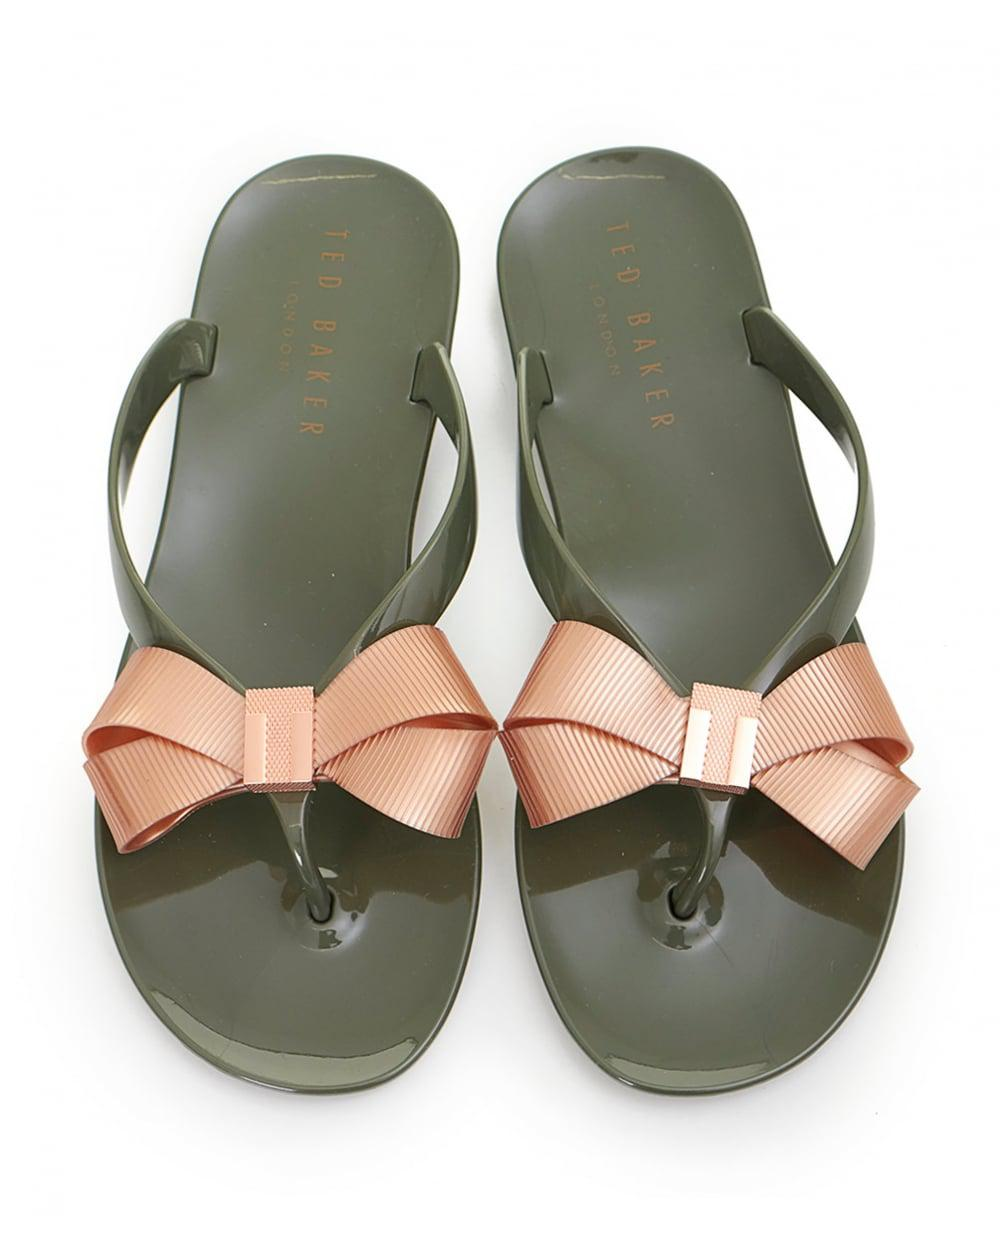 af21ff6f3 Lyst - Ted Baker Bow Front Jelly Flip Flops in Green